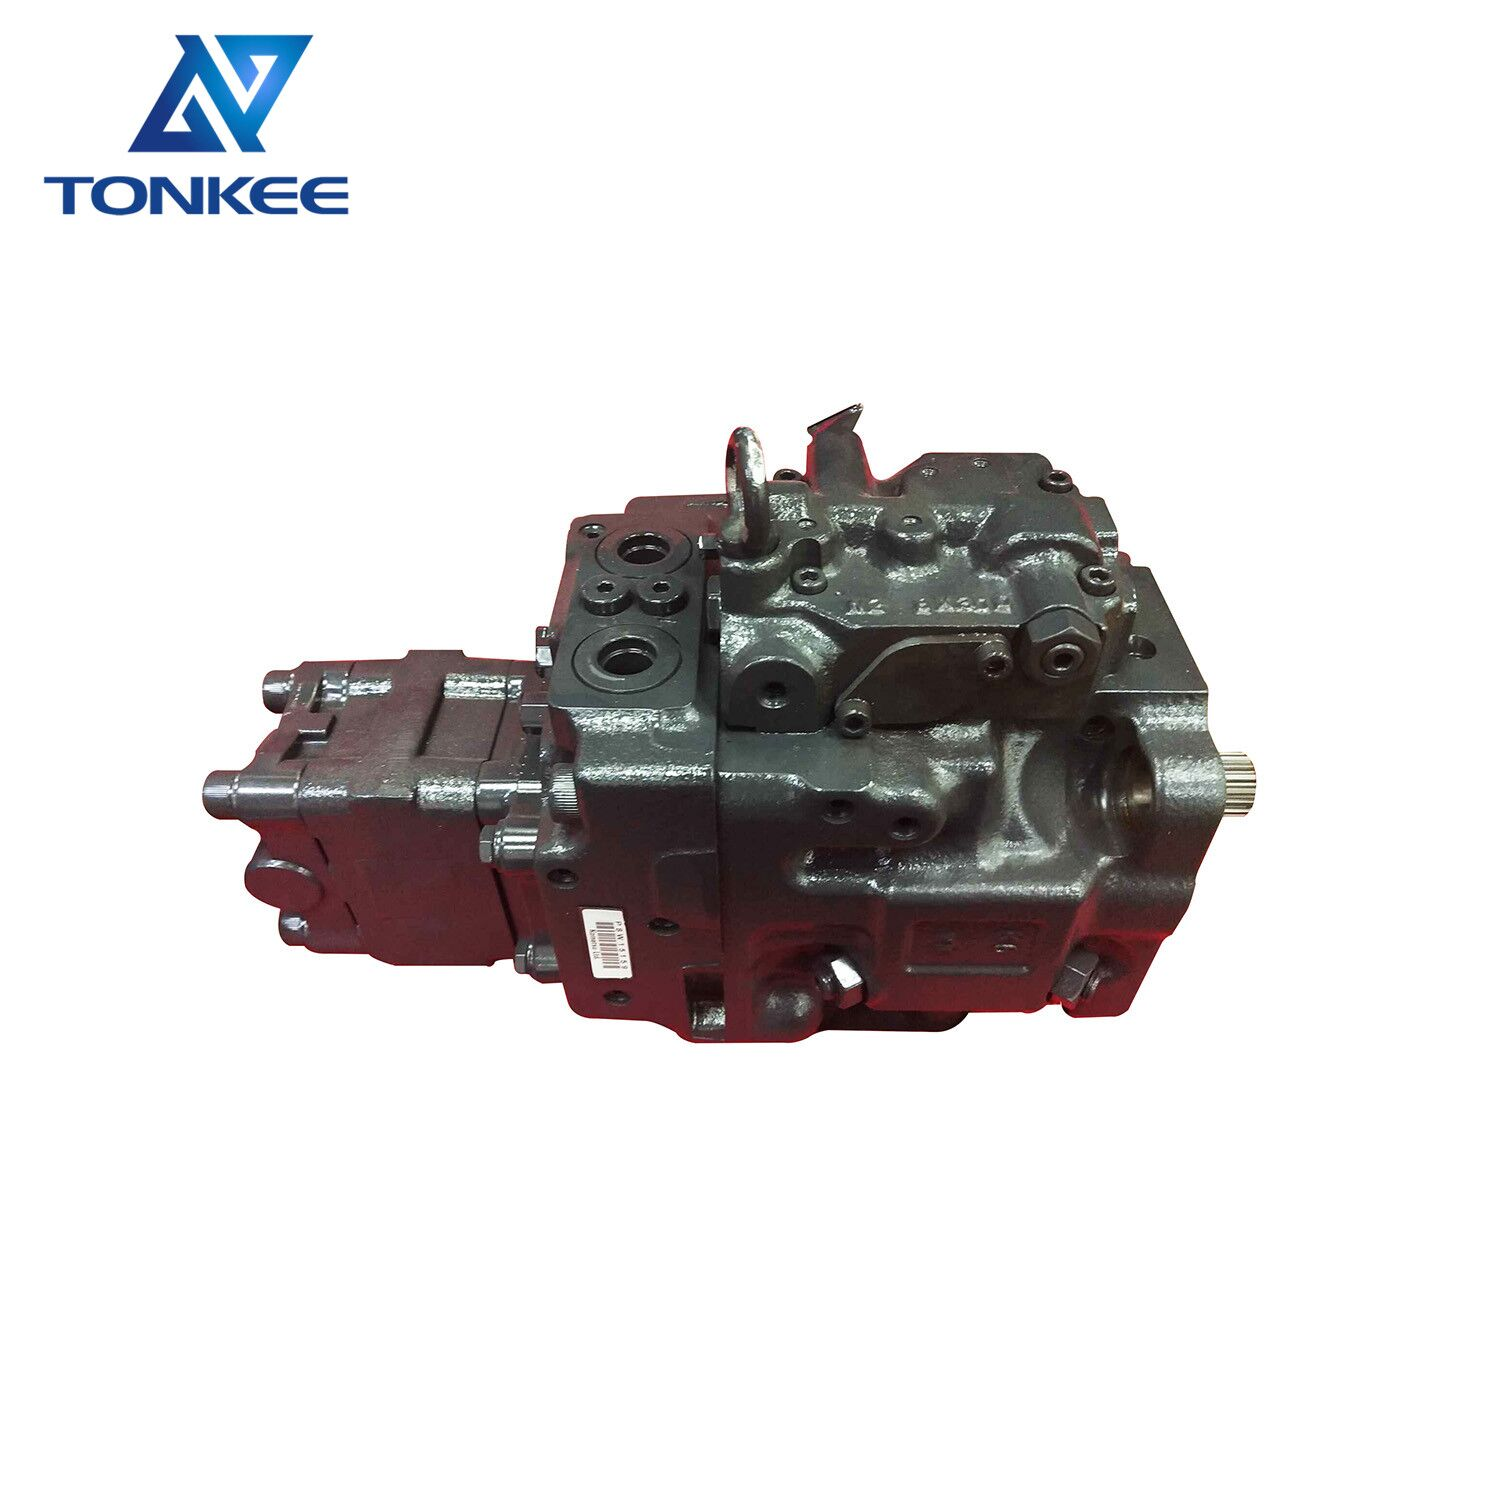 PC40MR-2 PC50MR-2 PC55MR-3 excavator main pump without solenoid 708-3S-04570 708-3S-00461 708-3S-00460 708-3S-00522 708-3S-00521 708-3S-00830 hydraulic piston pump assembly suitable for KOMATSU